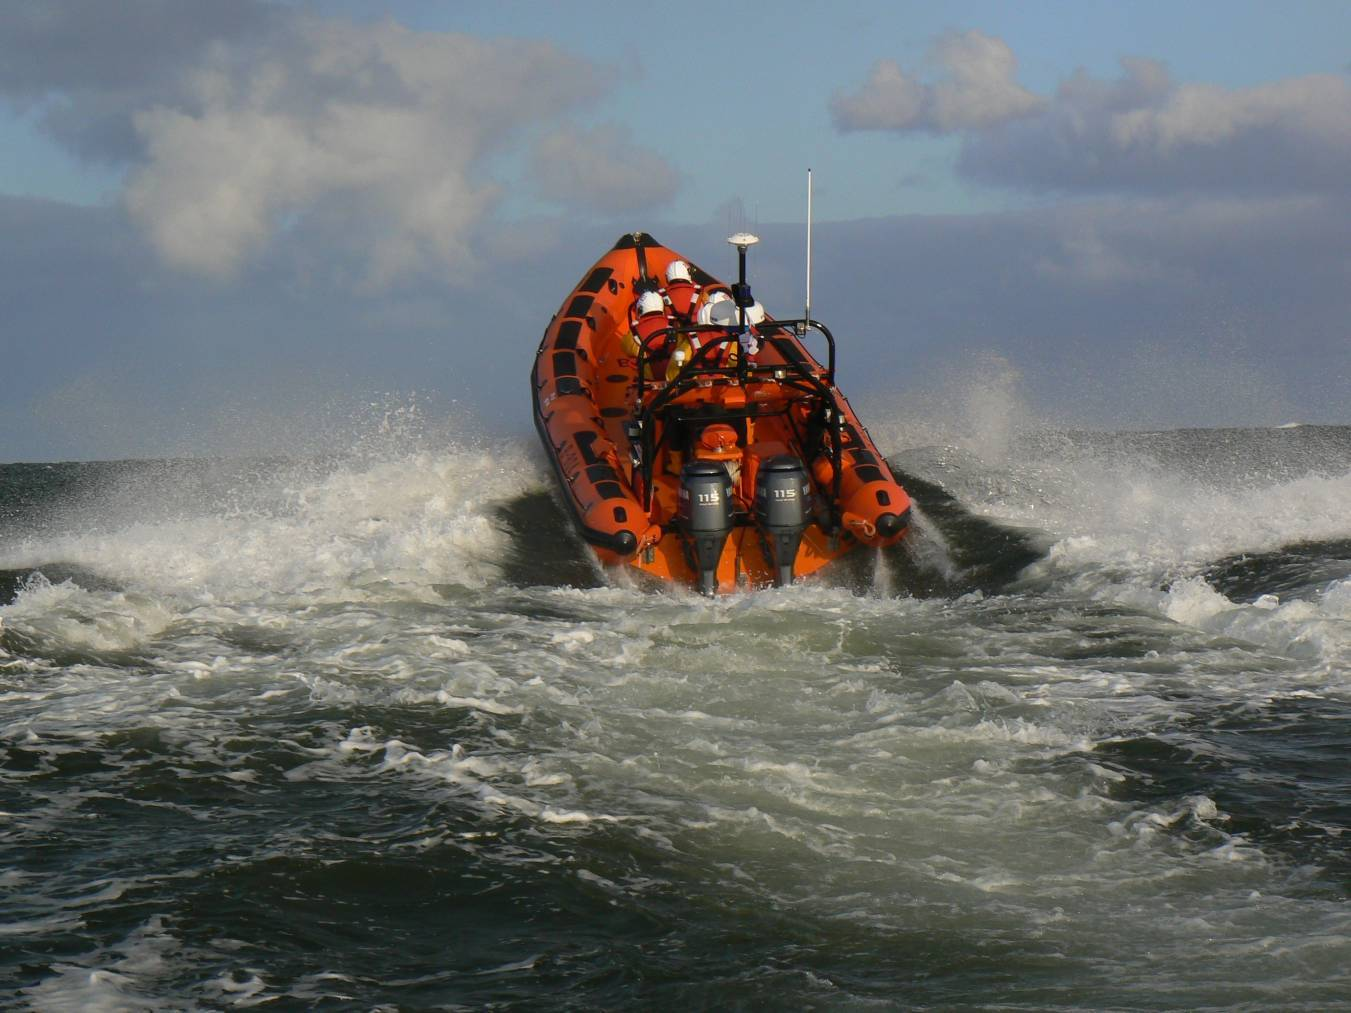 The lifeboat team from Macduff was called to assist the stranded fishermen.